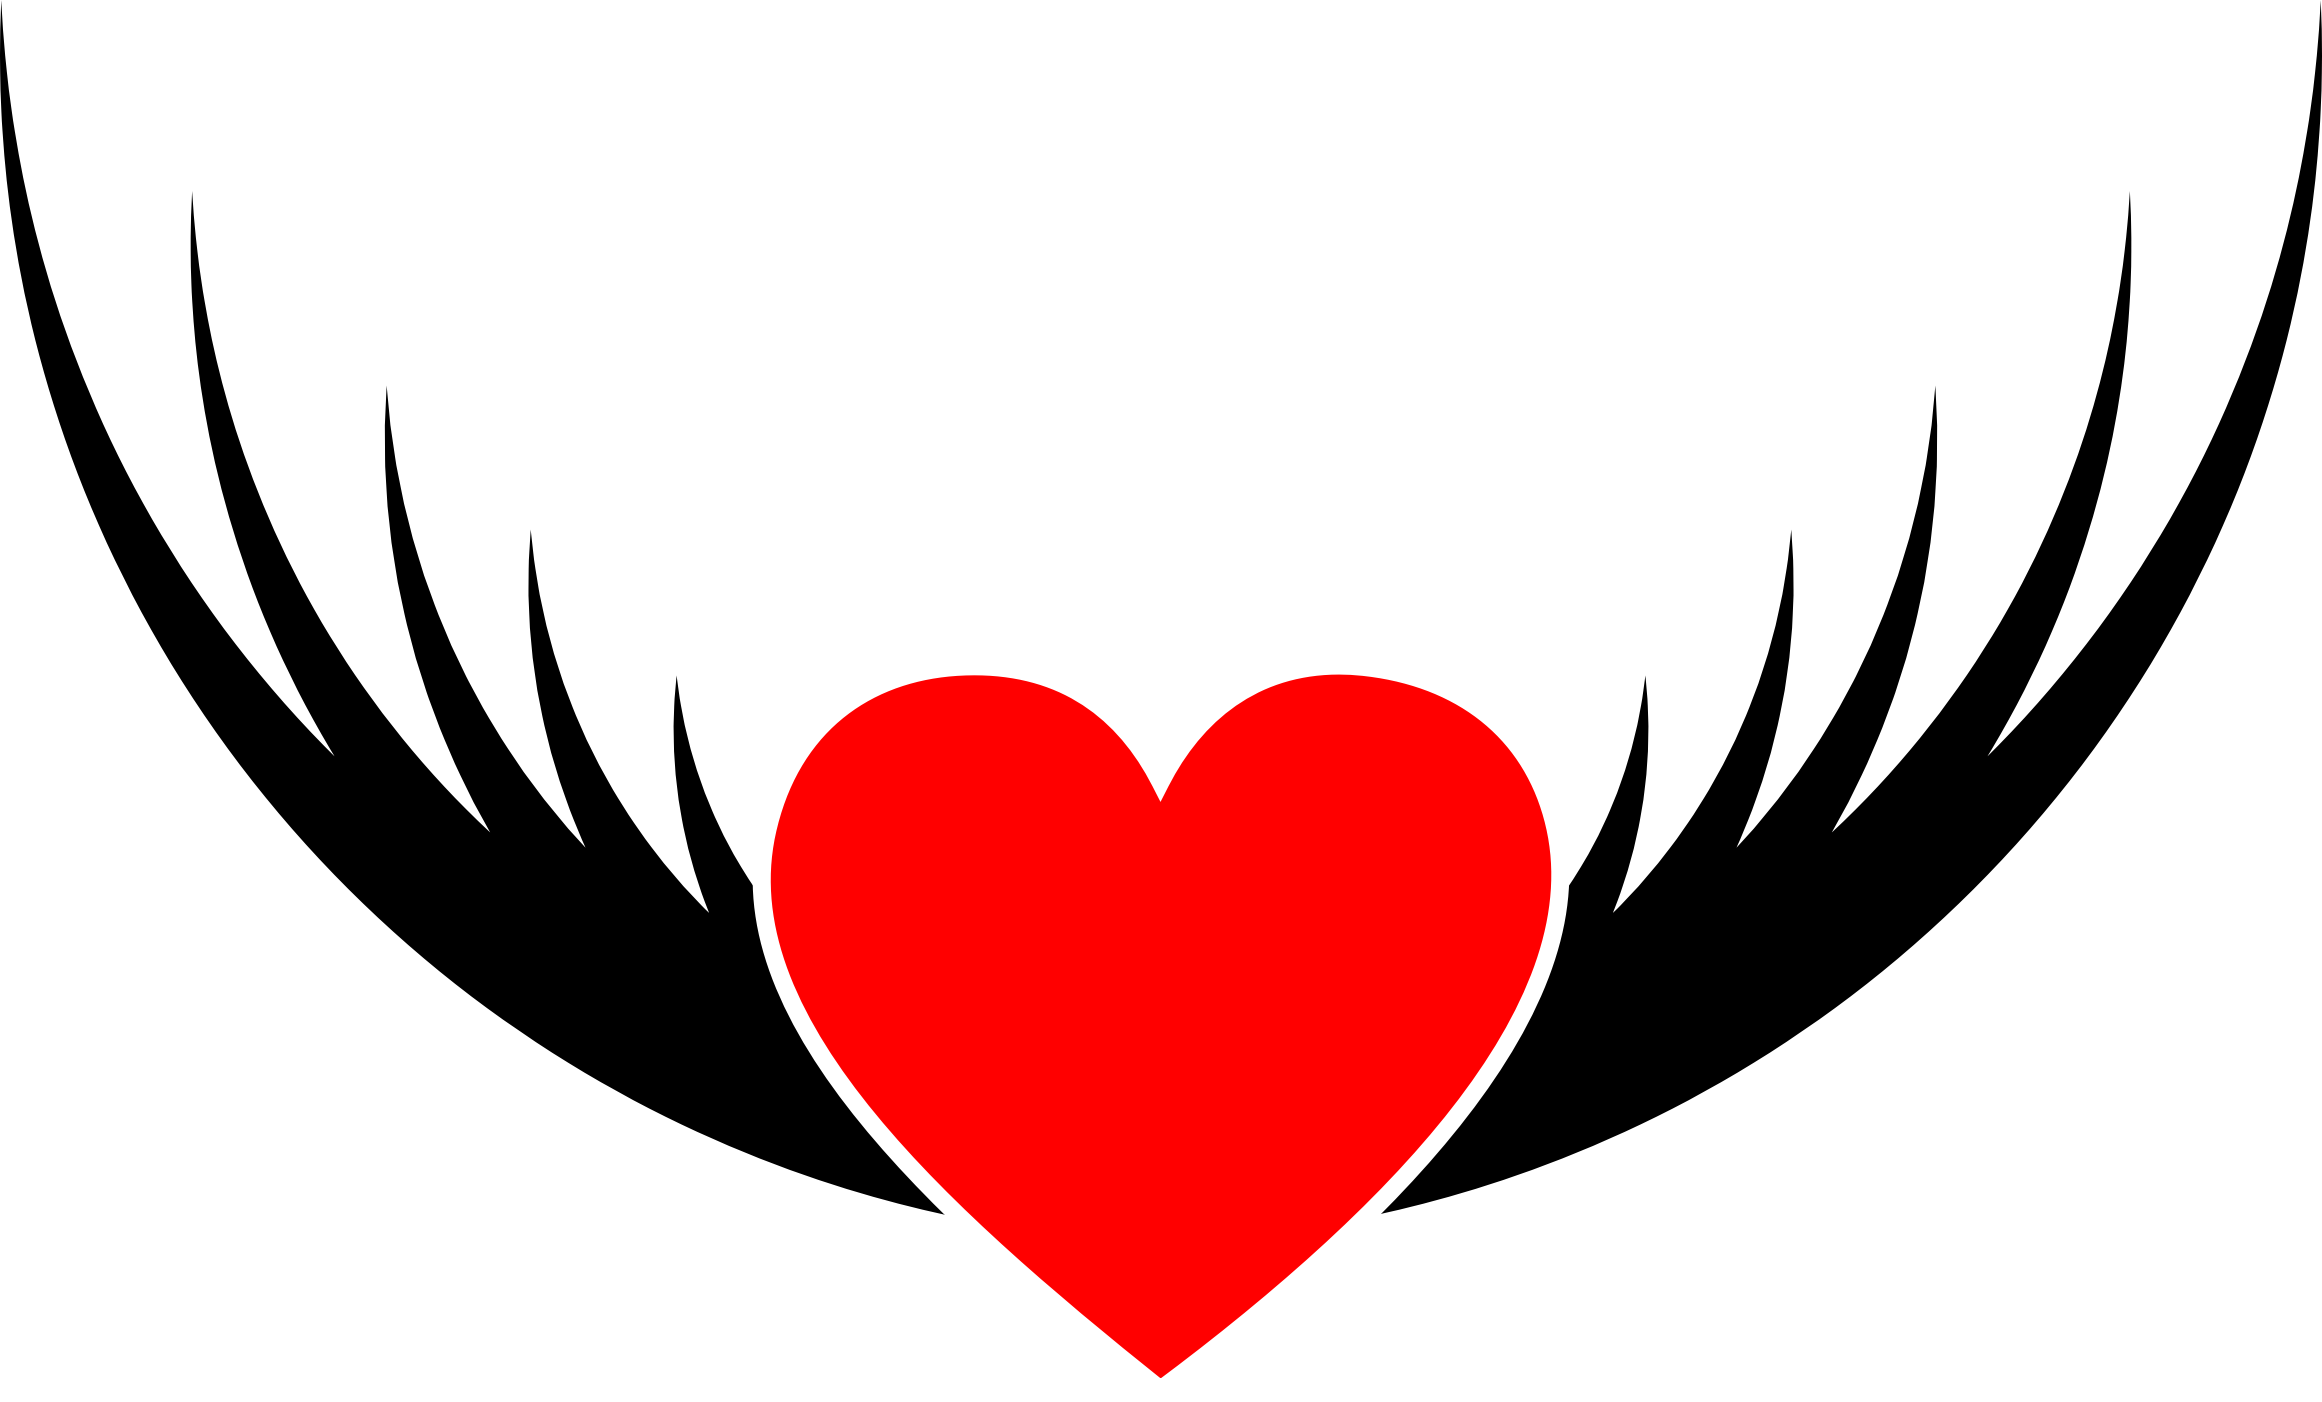 Flying big image png. Clipart heart simple